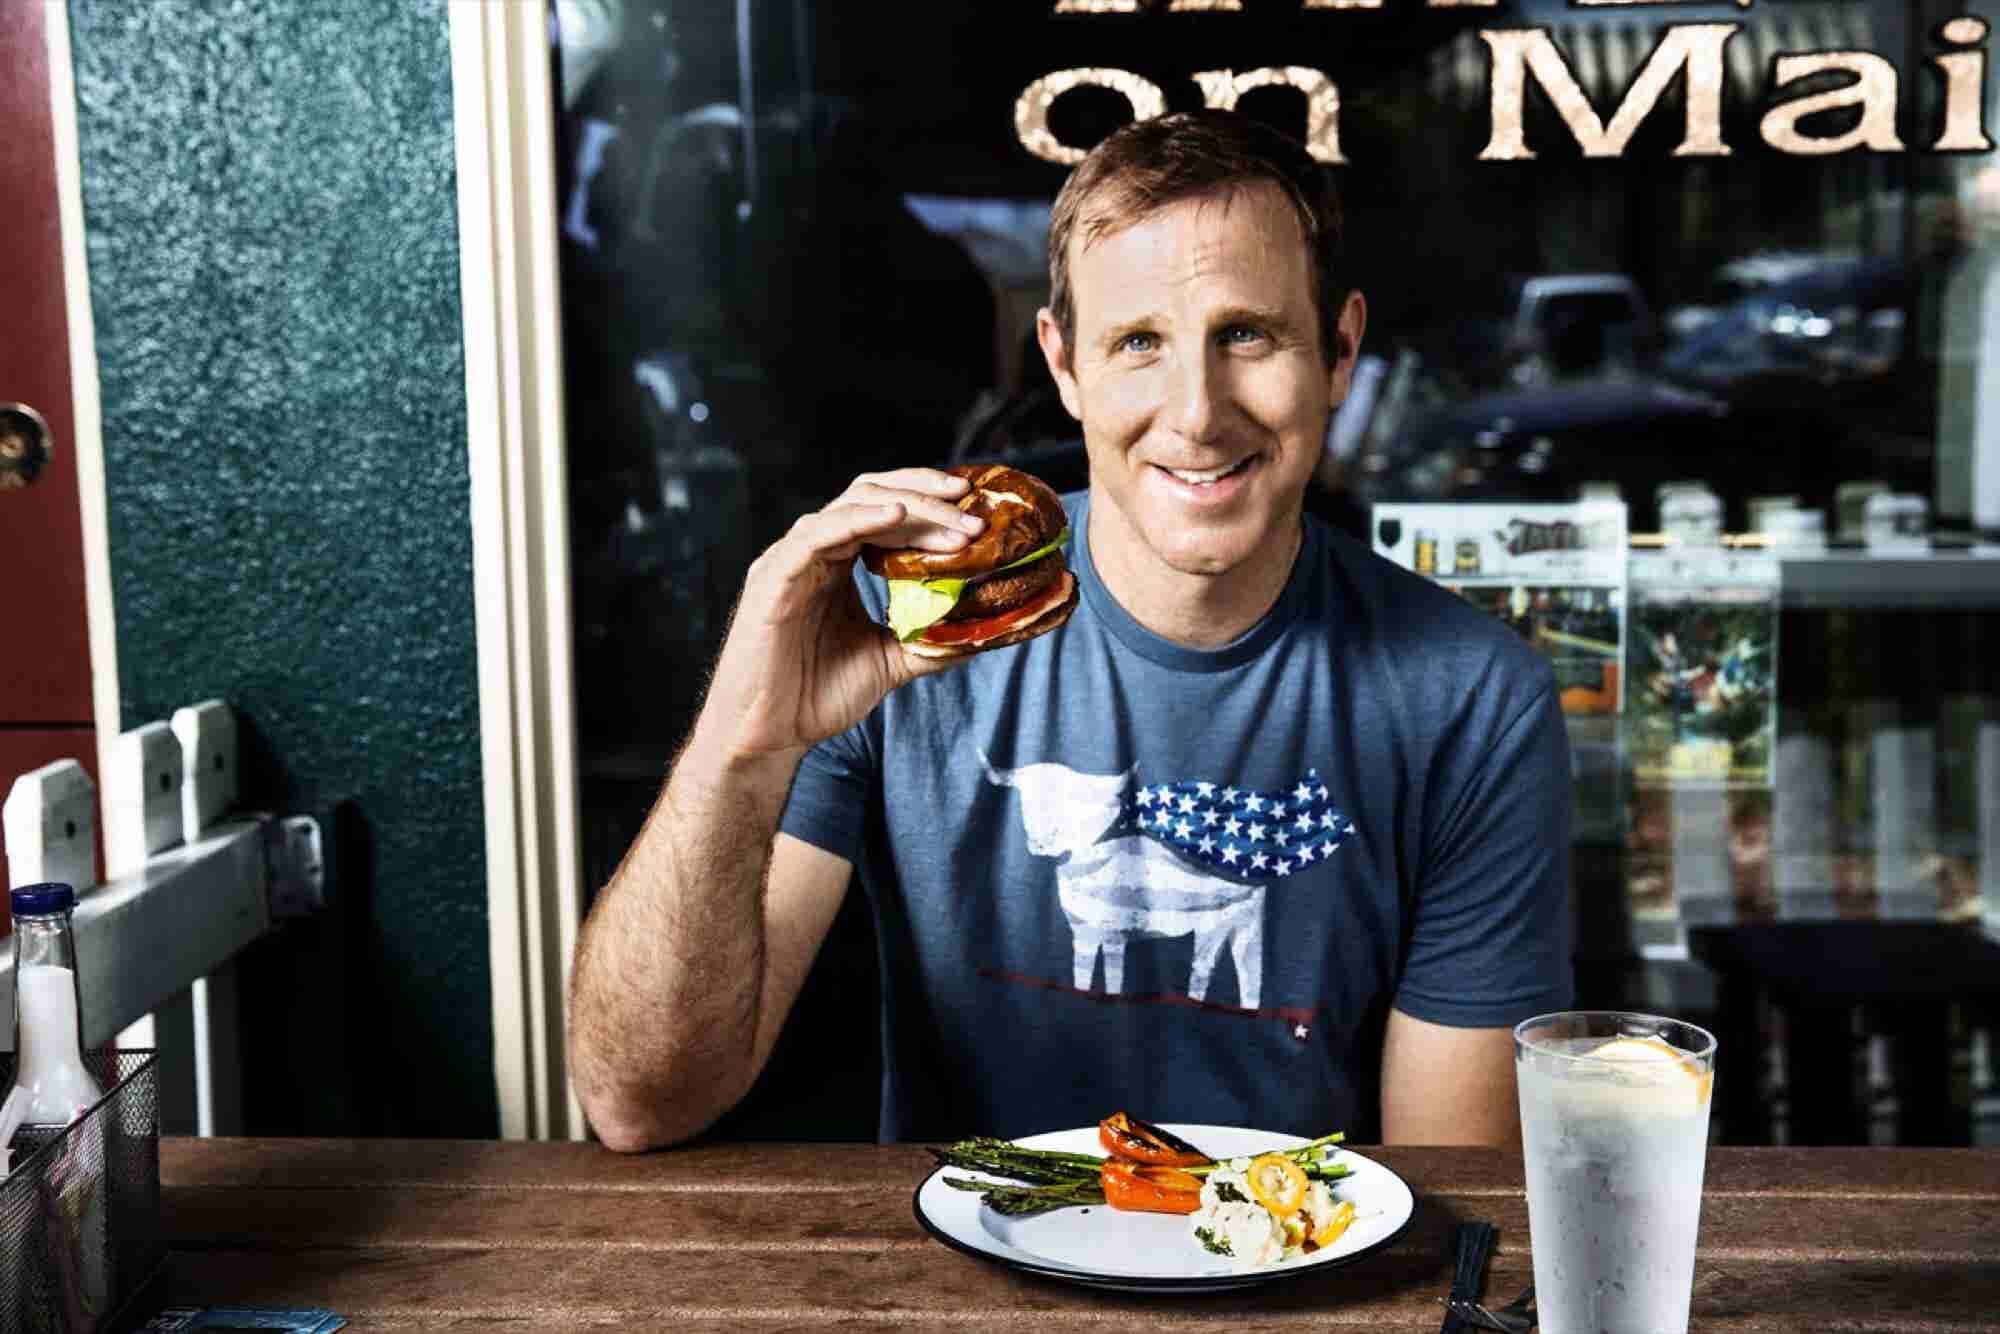 With $72 Million in Funding, the Entrepreneur Behind Beyond Meat Pursues Innovation Over Profit